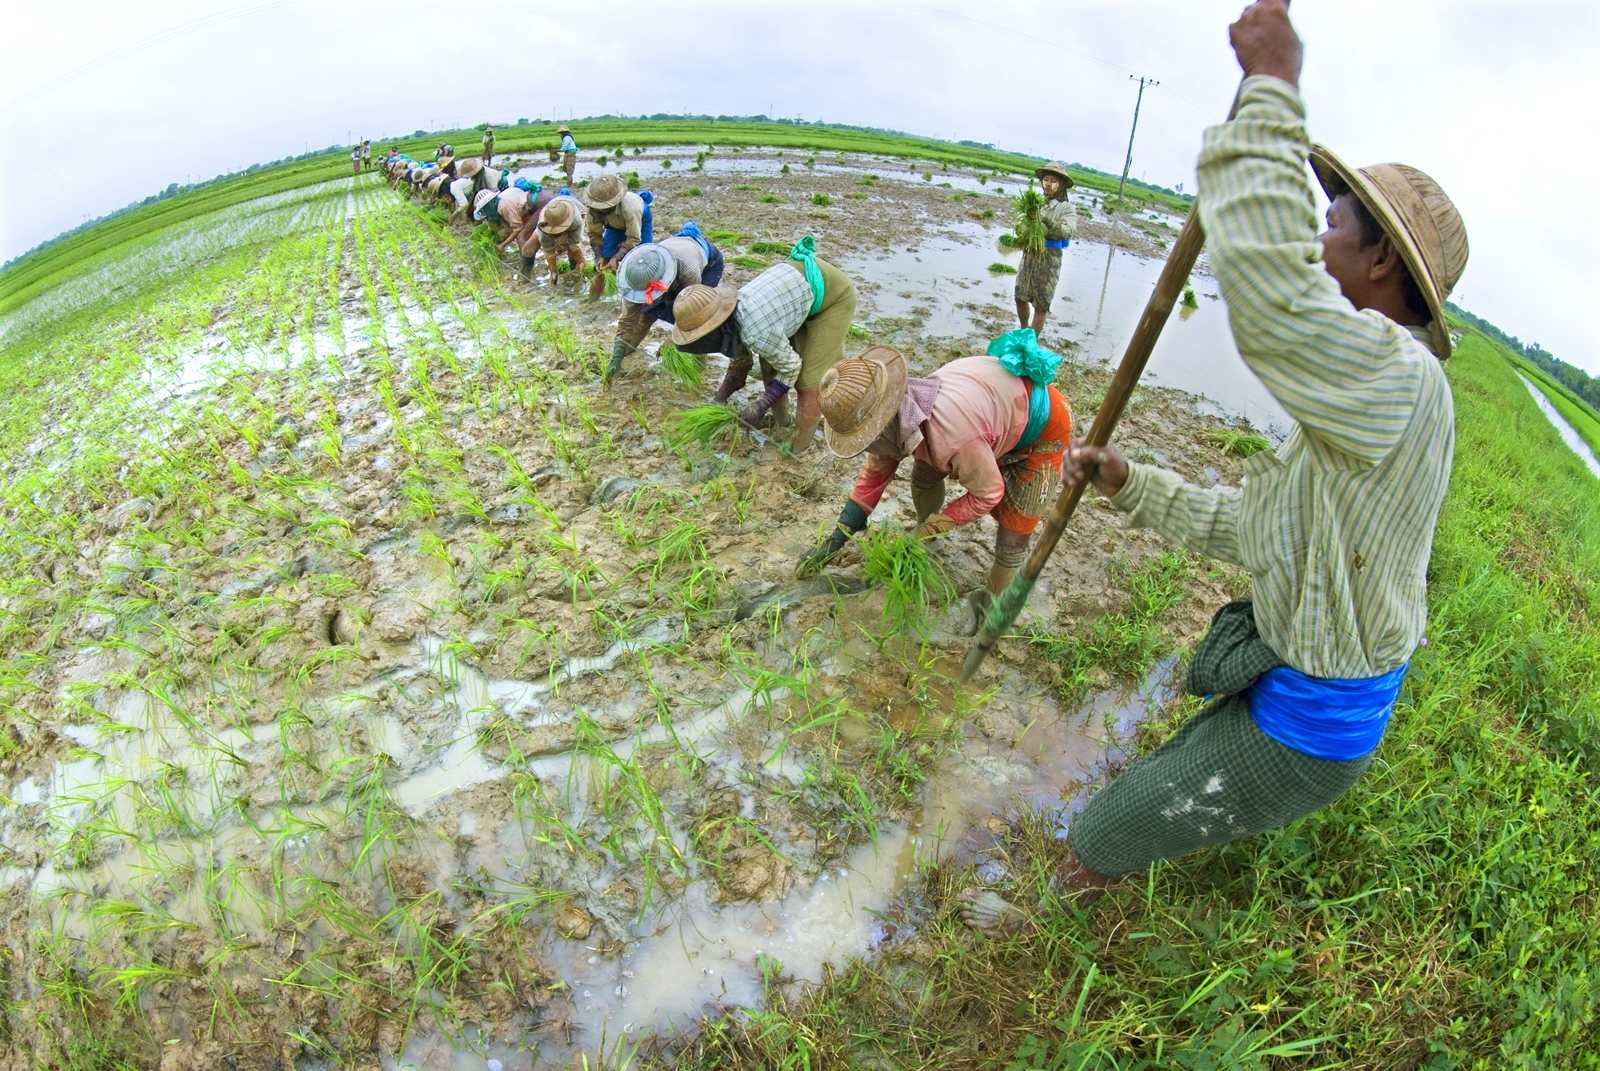 Philippine agri-land laws 'tragic': Senator